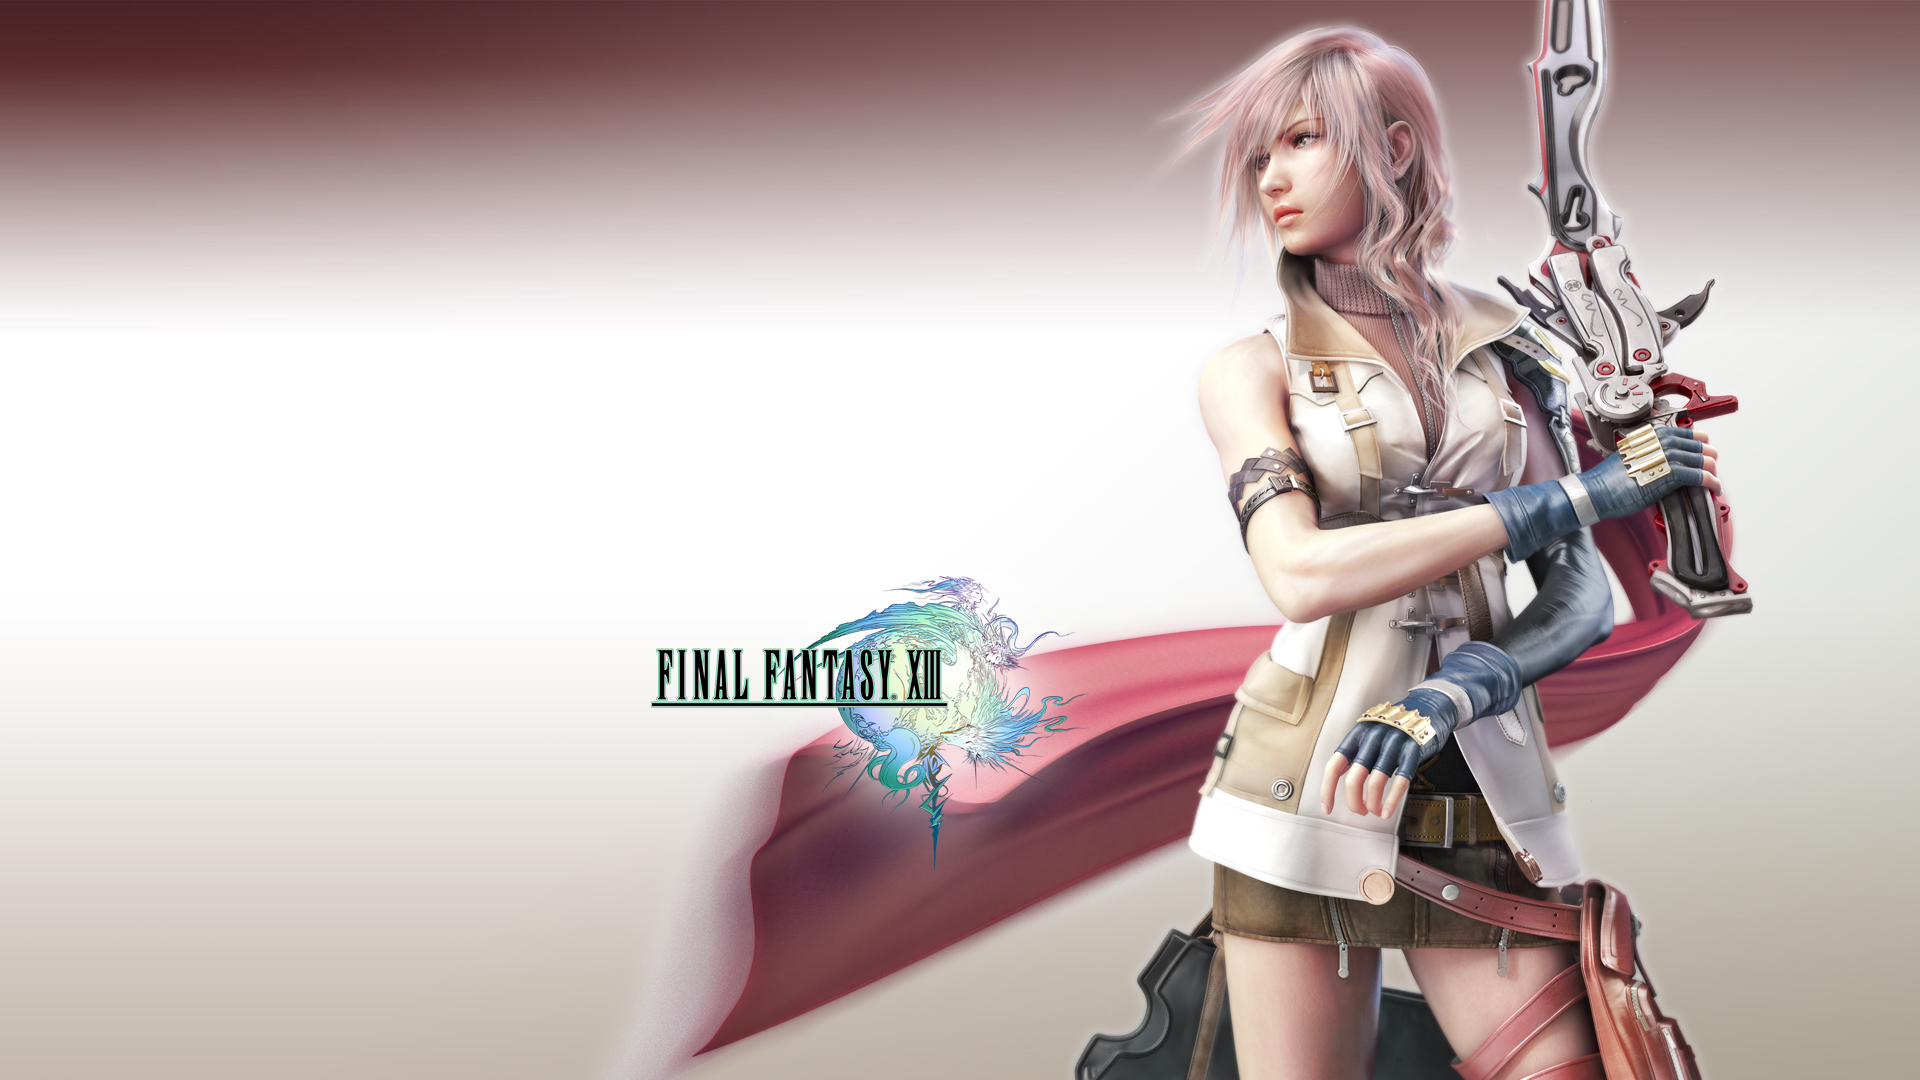 UP0082NPUB90216 3xHDVFinalFantasyIII Wallpaper Lightning HDjpg 1920x1080